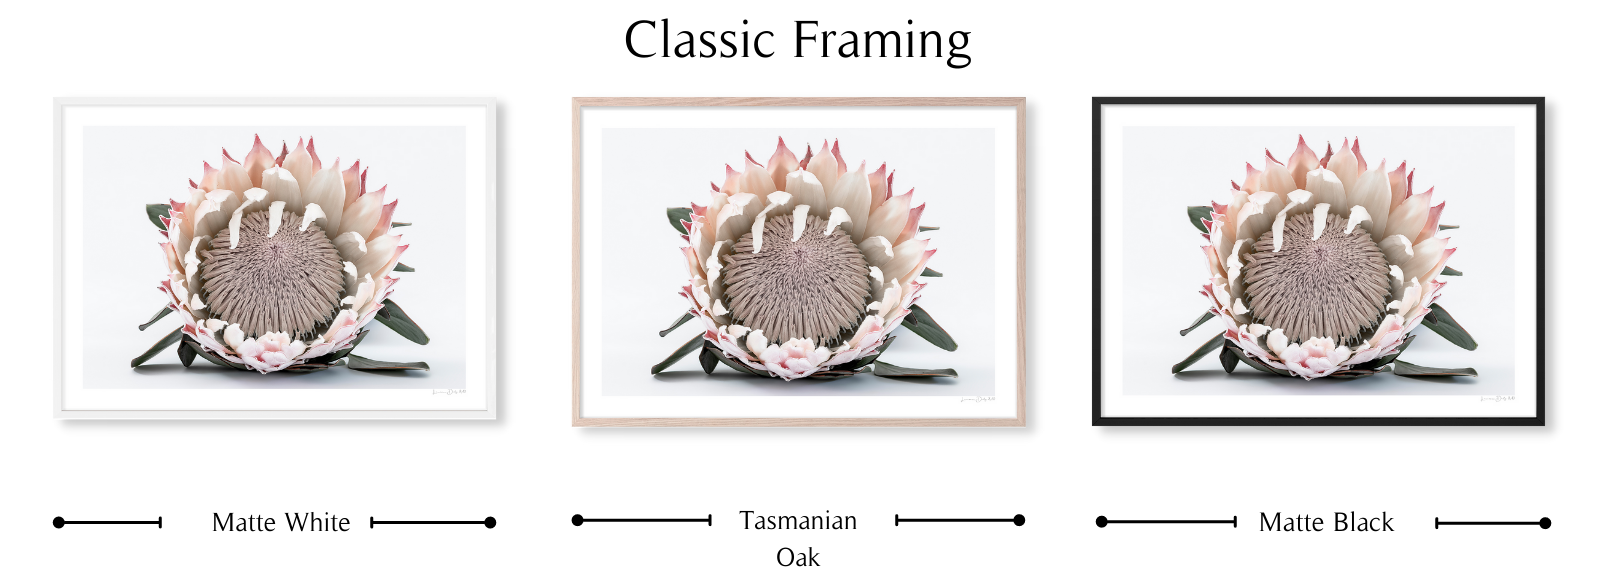 Protea #1 By Lauren Daly | Classic Framing Style | LD Art House